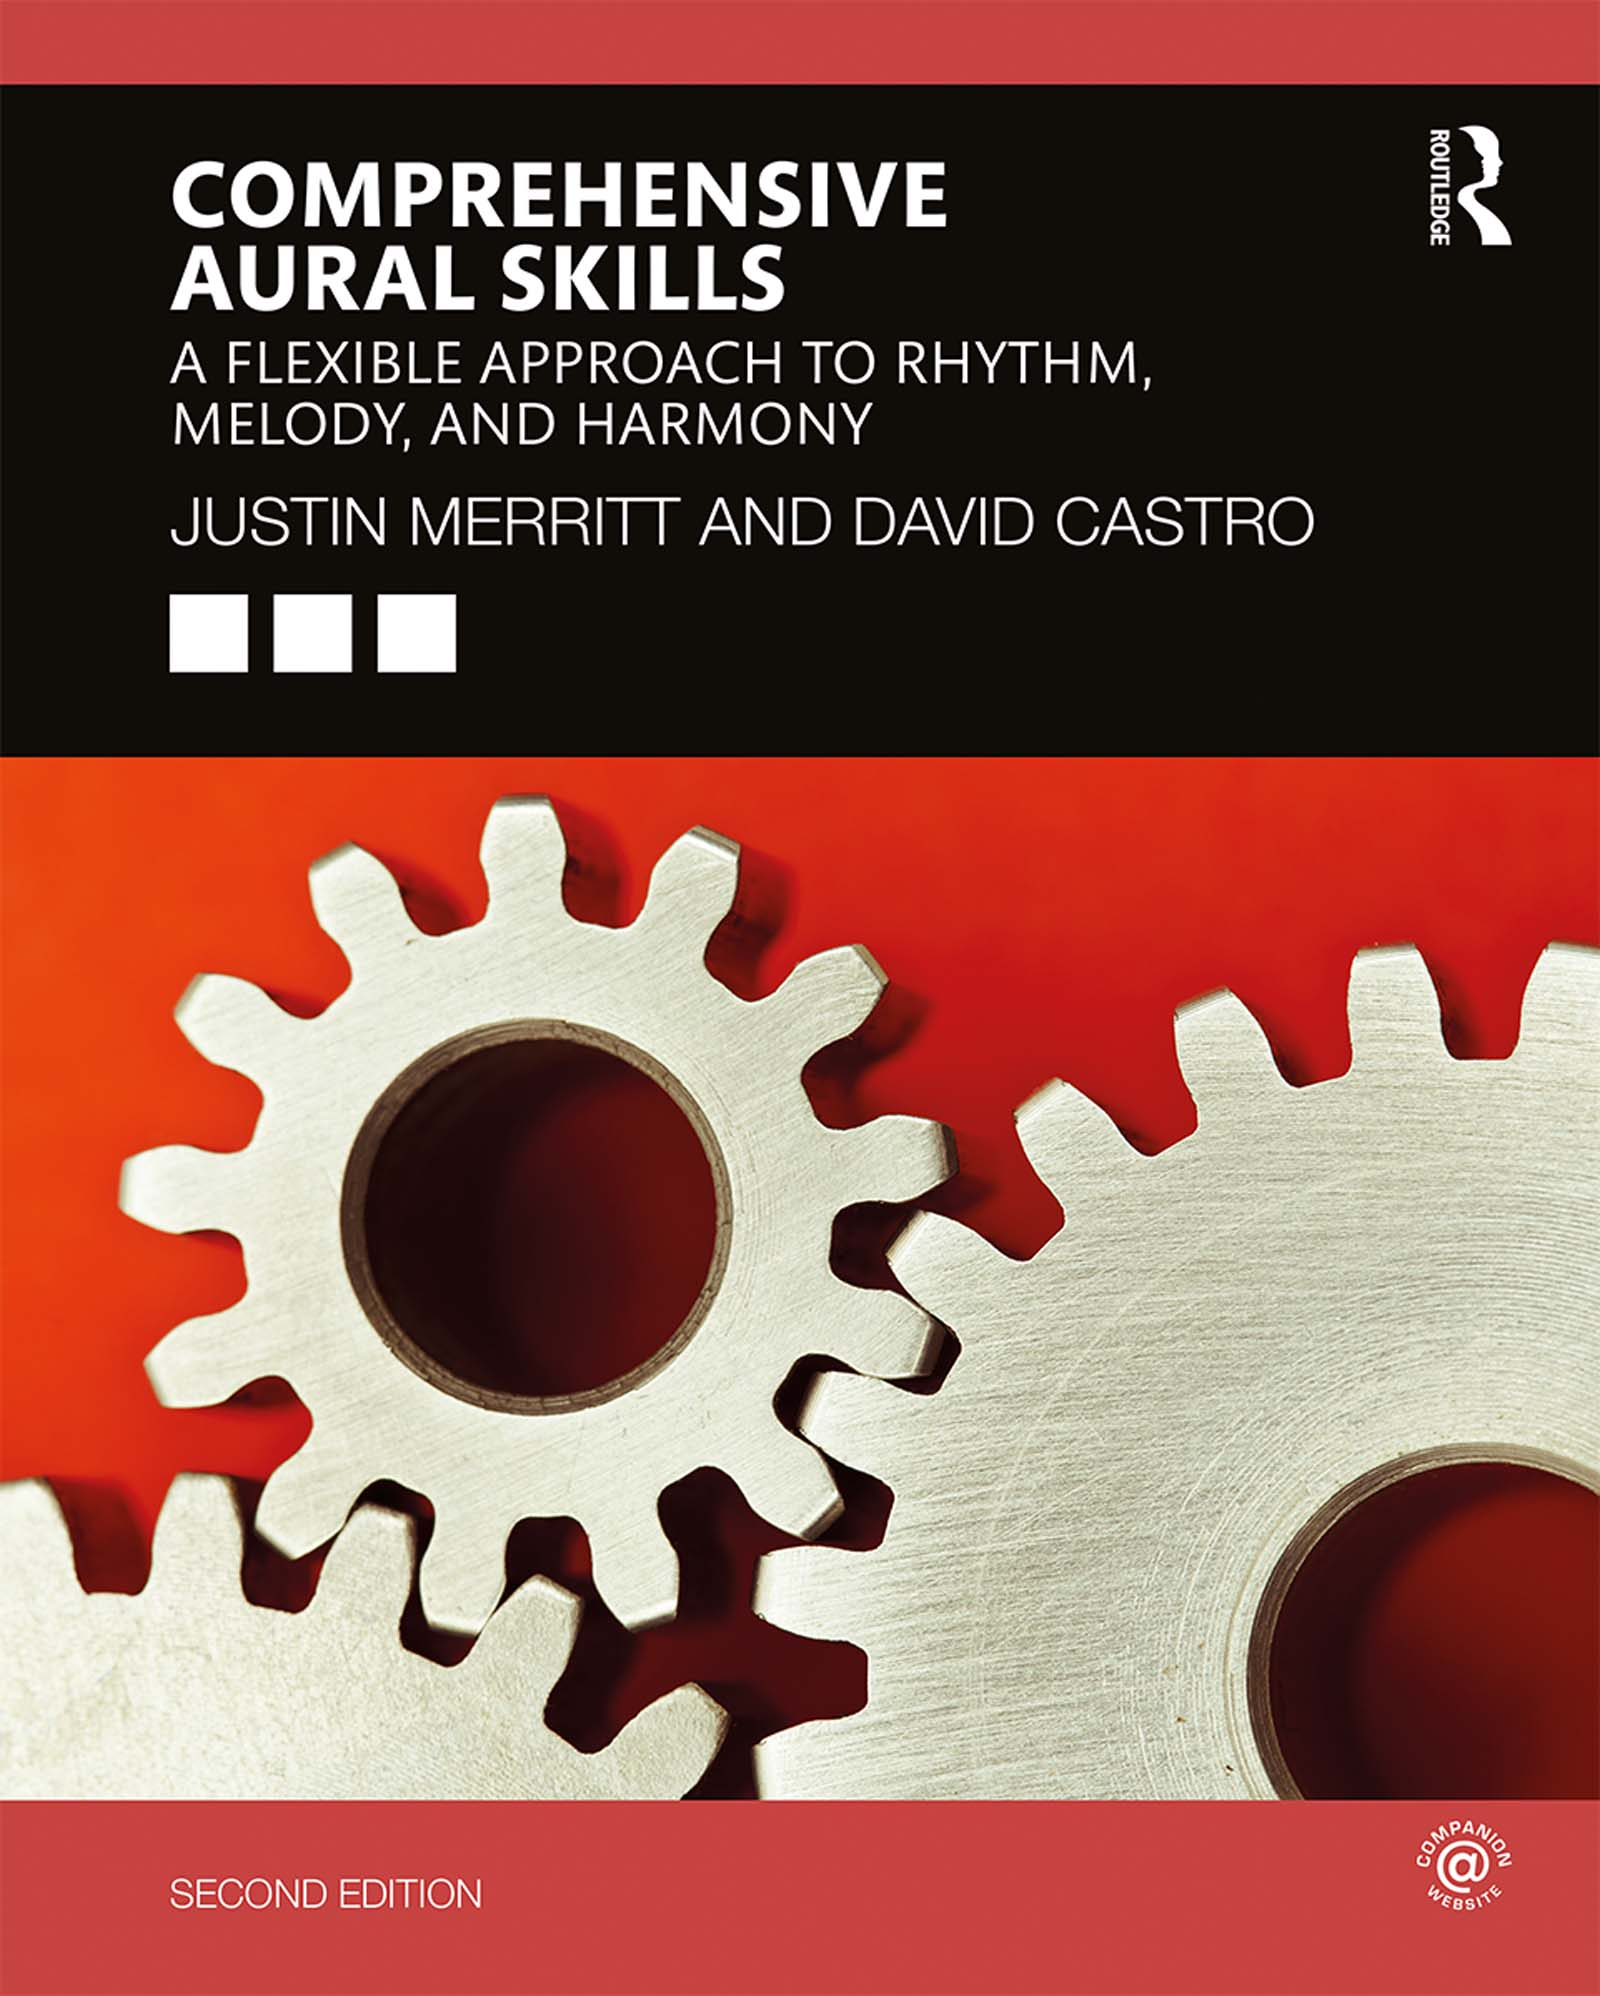 Comprehensive Aural Skills: A Flexible Approach to Rhythm, Melody, and Harmony book cover